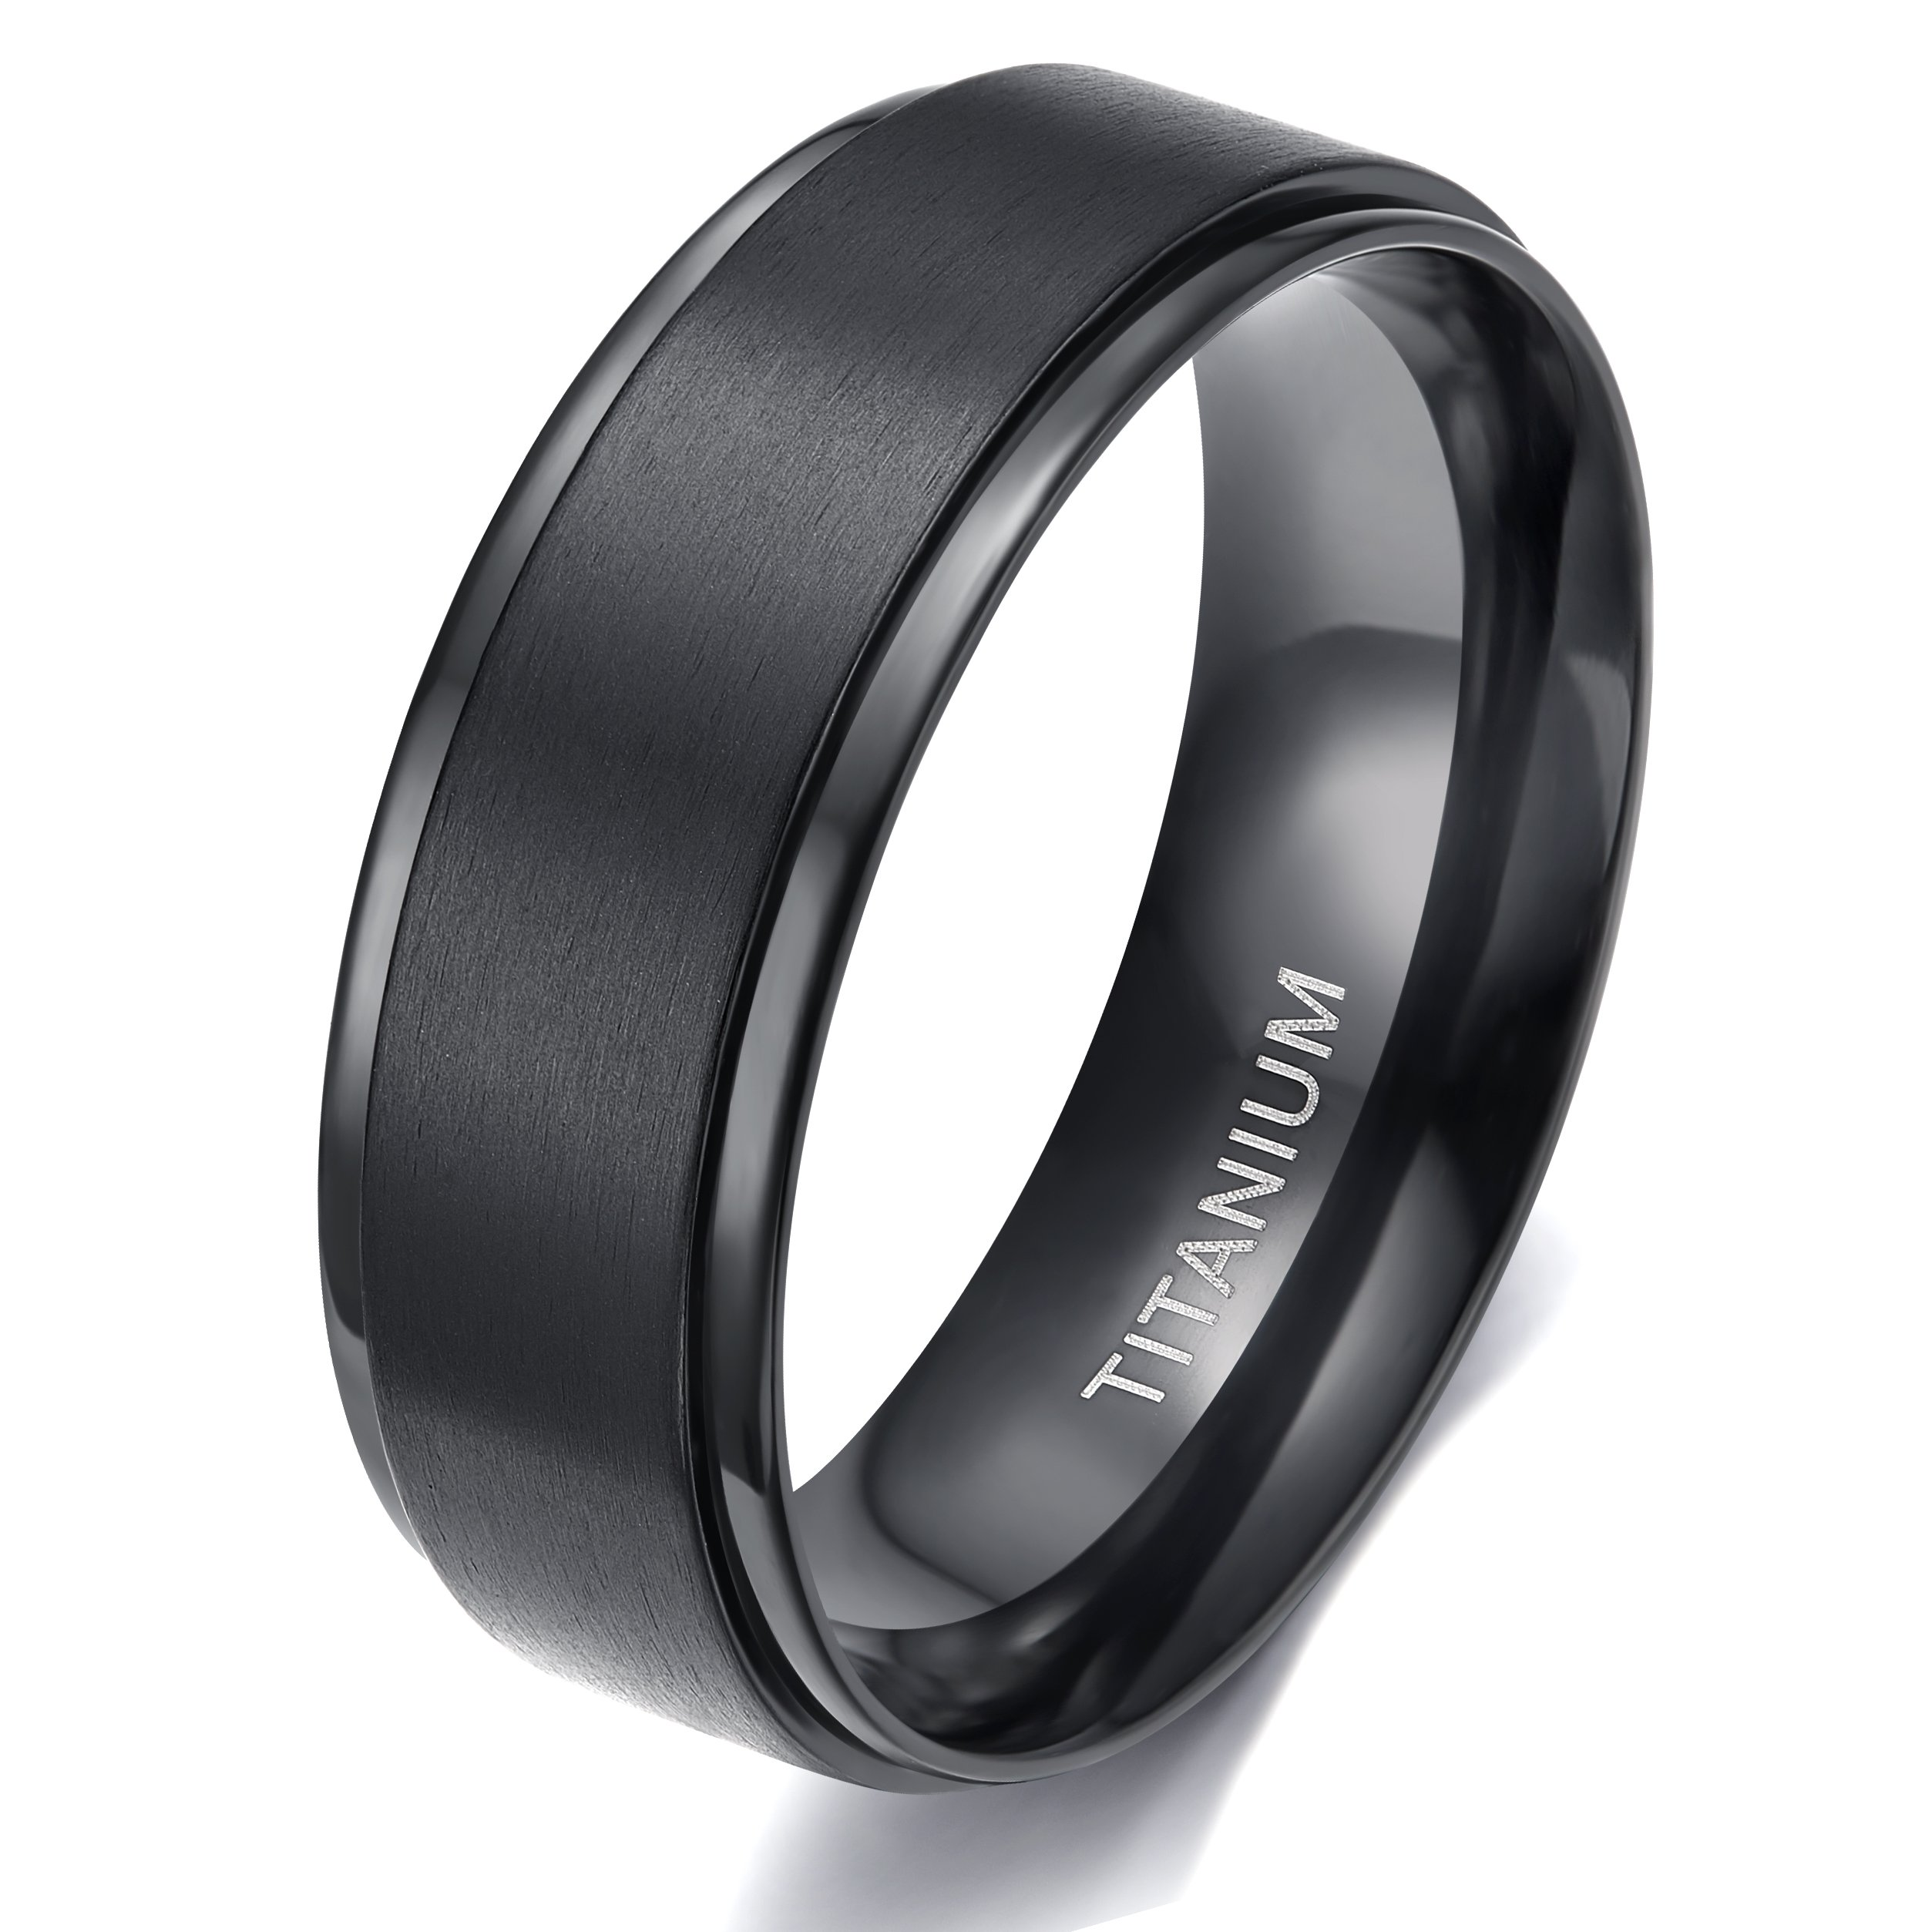 TIGRADE 8MM Comfort Fit Titanium Wedding Band | Engagement Ring with Black Plated and Brushed Top finish | Grooved Polished Edges(10)